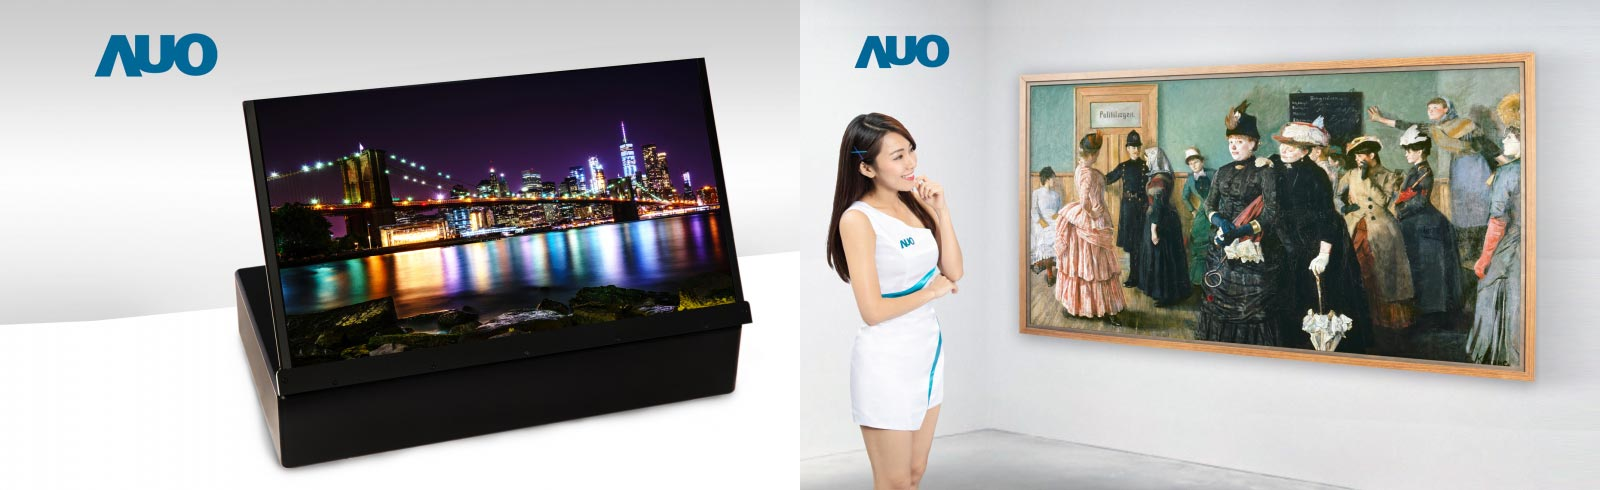 AUO will unveil a 17.3-inch 4K UHD ink-jet printing OLED technology